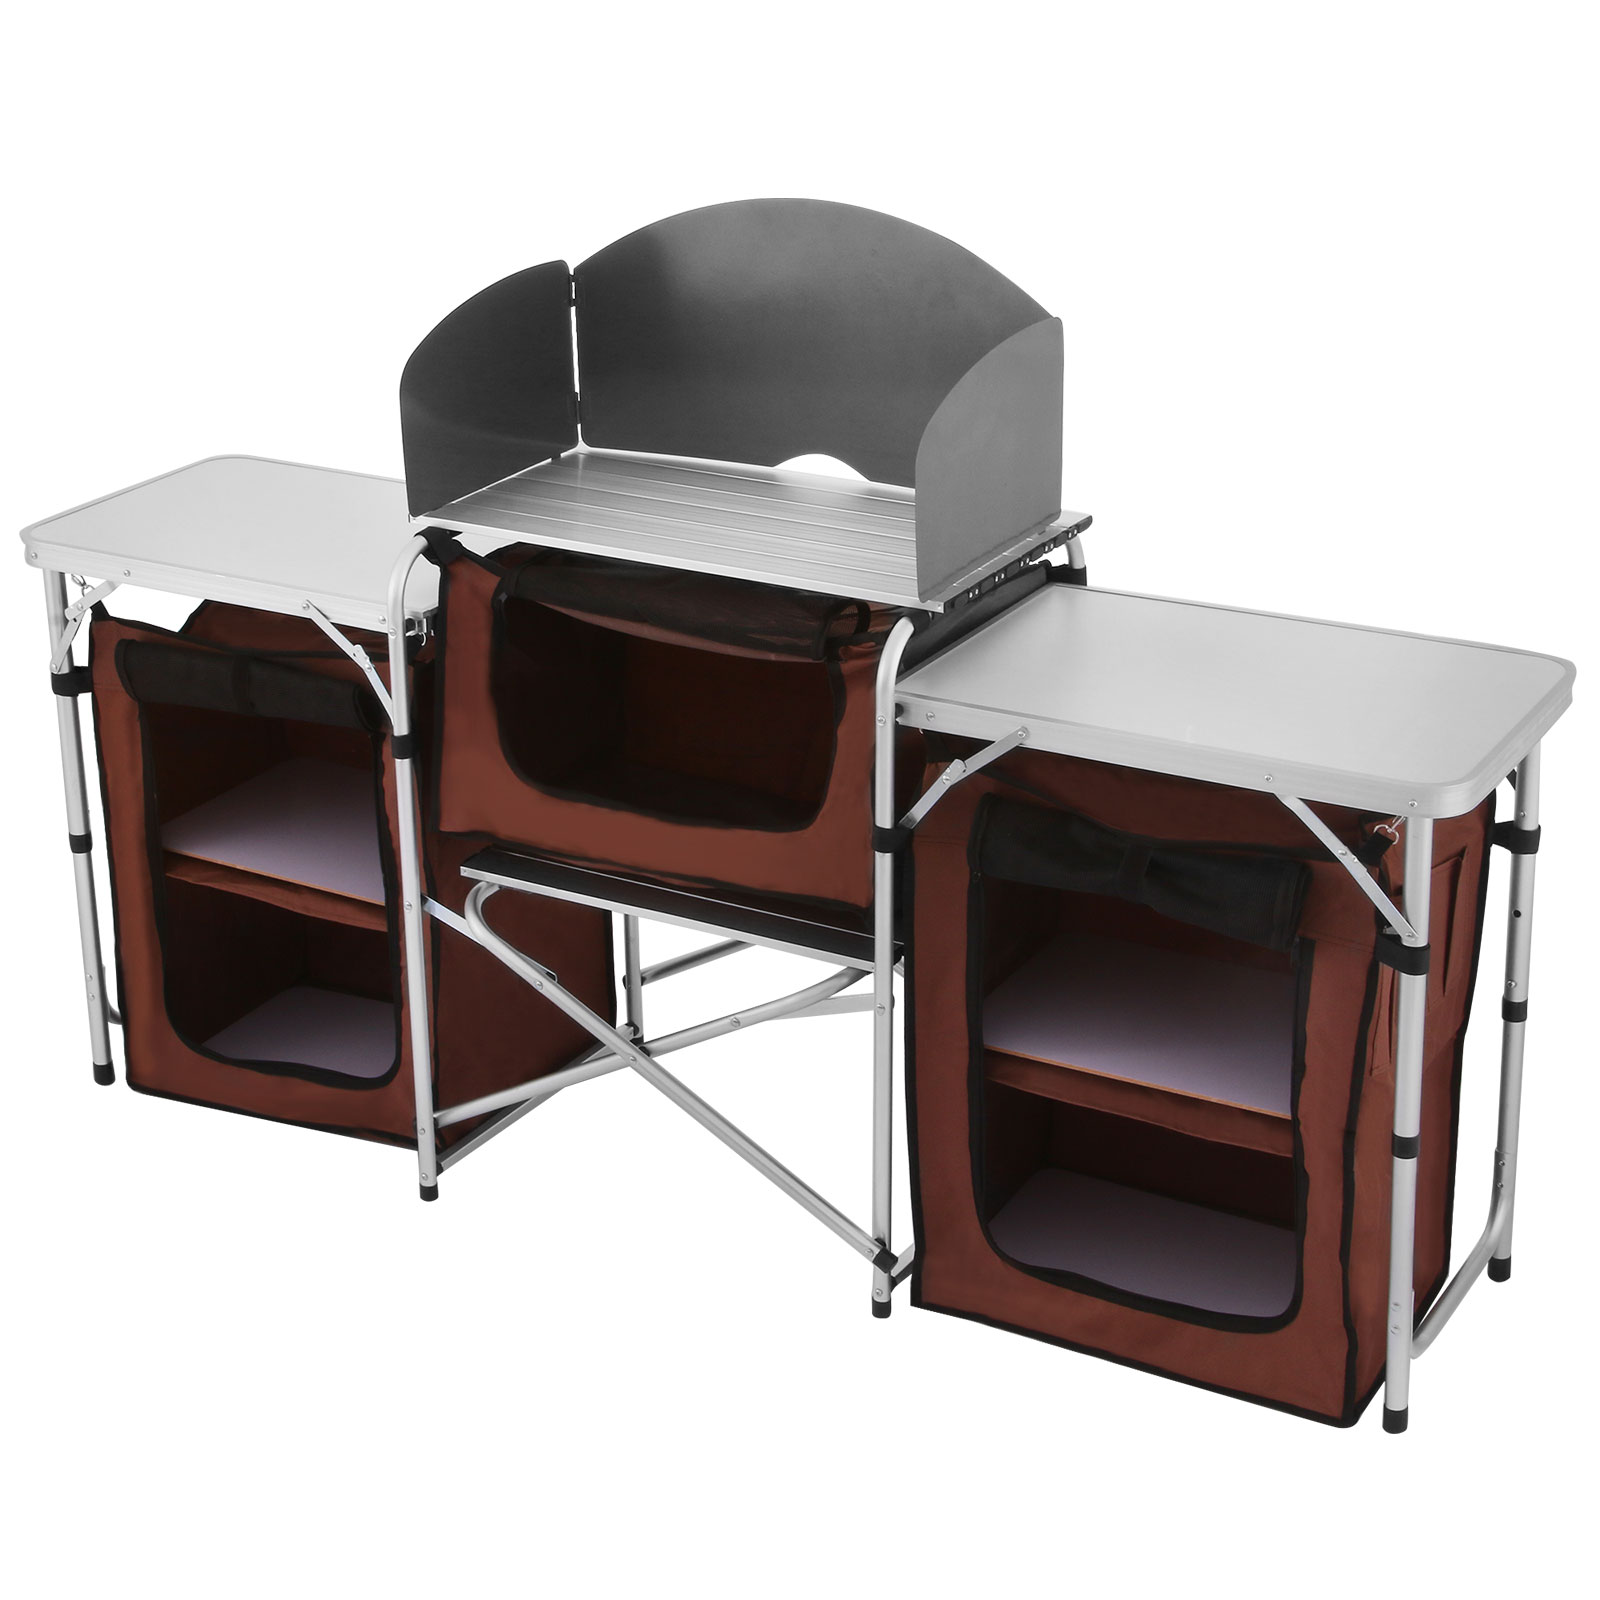 Camping kitchen table food prep storage cooking tables adjustable folding ebay - Table retractable cuisine ...